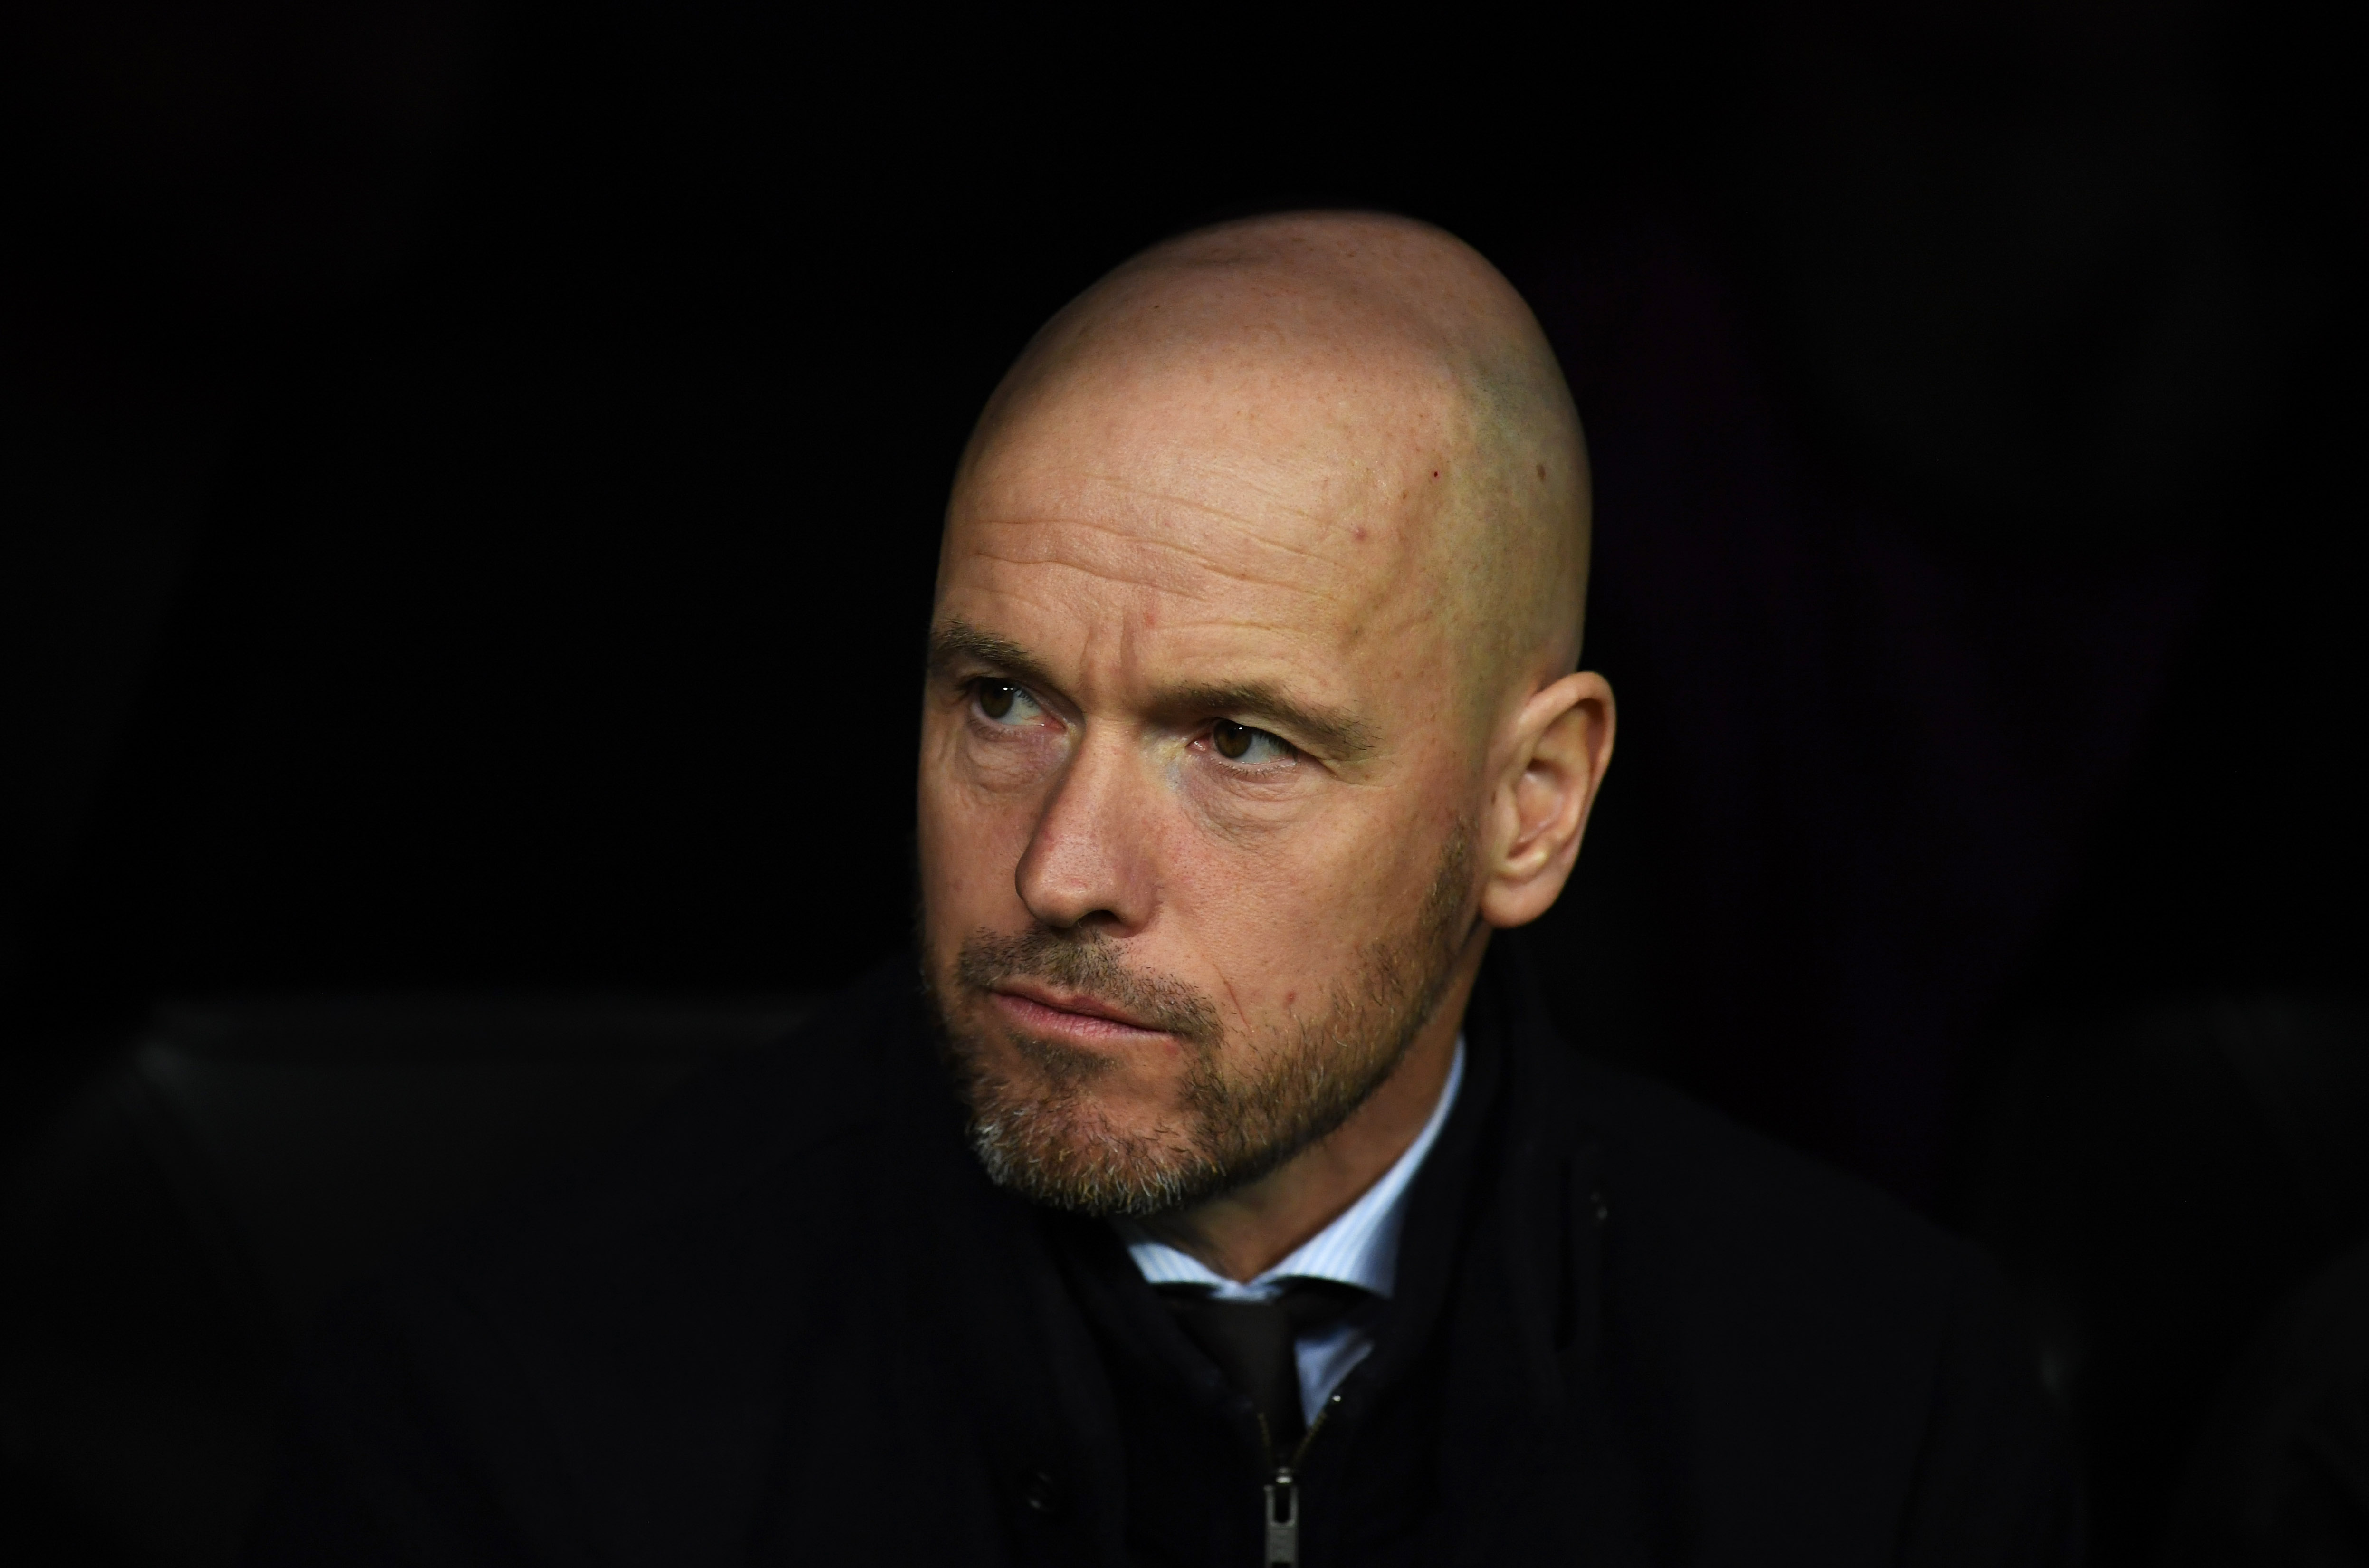 MADRID, SPAIN - MARCH 05: Erik Ten Hag, Manager of Ajax looks on prior to the UEFA Champions League Round of 16 Second Leg match between Real Madrid and Ajax at Bernabeu on March 05, 2019 in Madrid, Spain. (Photo by David Ramos/Getty Images)